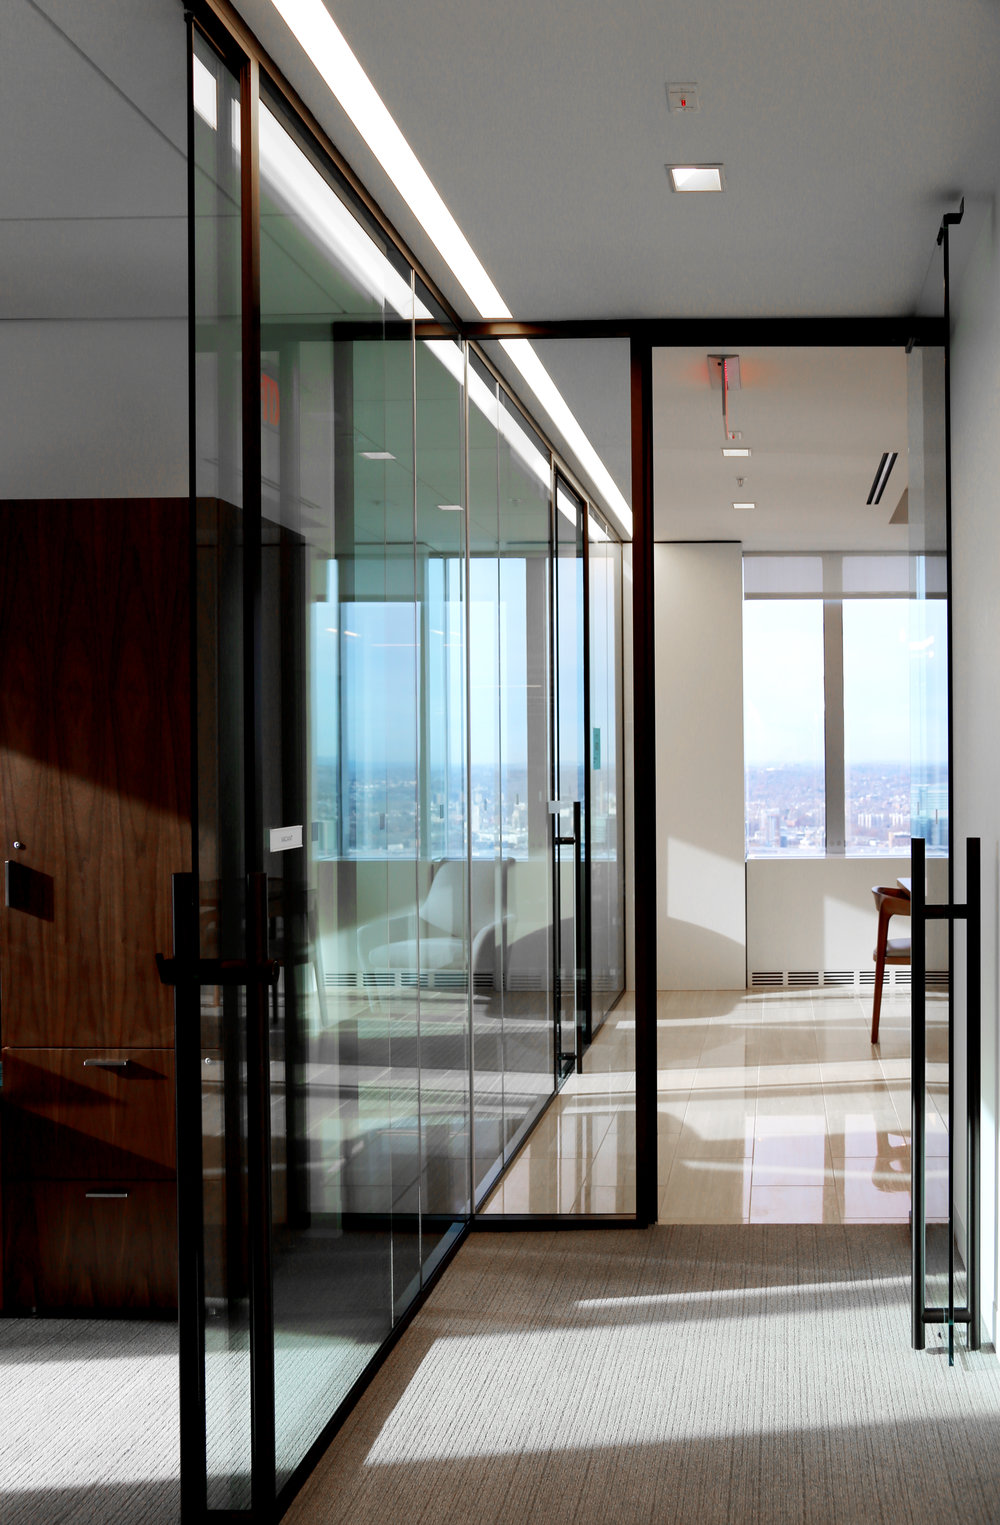 Modernus Demountable Glass System Frameless Glass Doors - Spaceworks AI.jpg